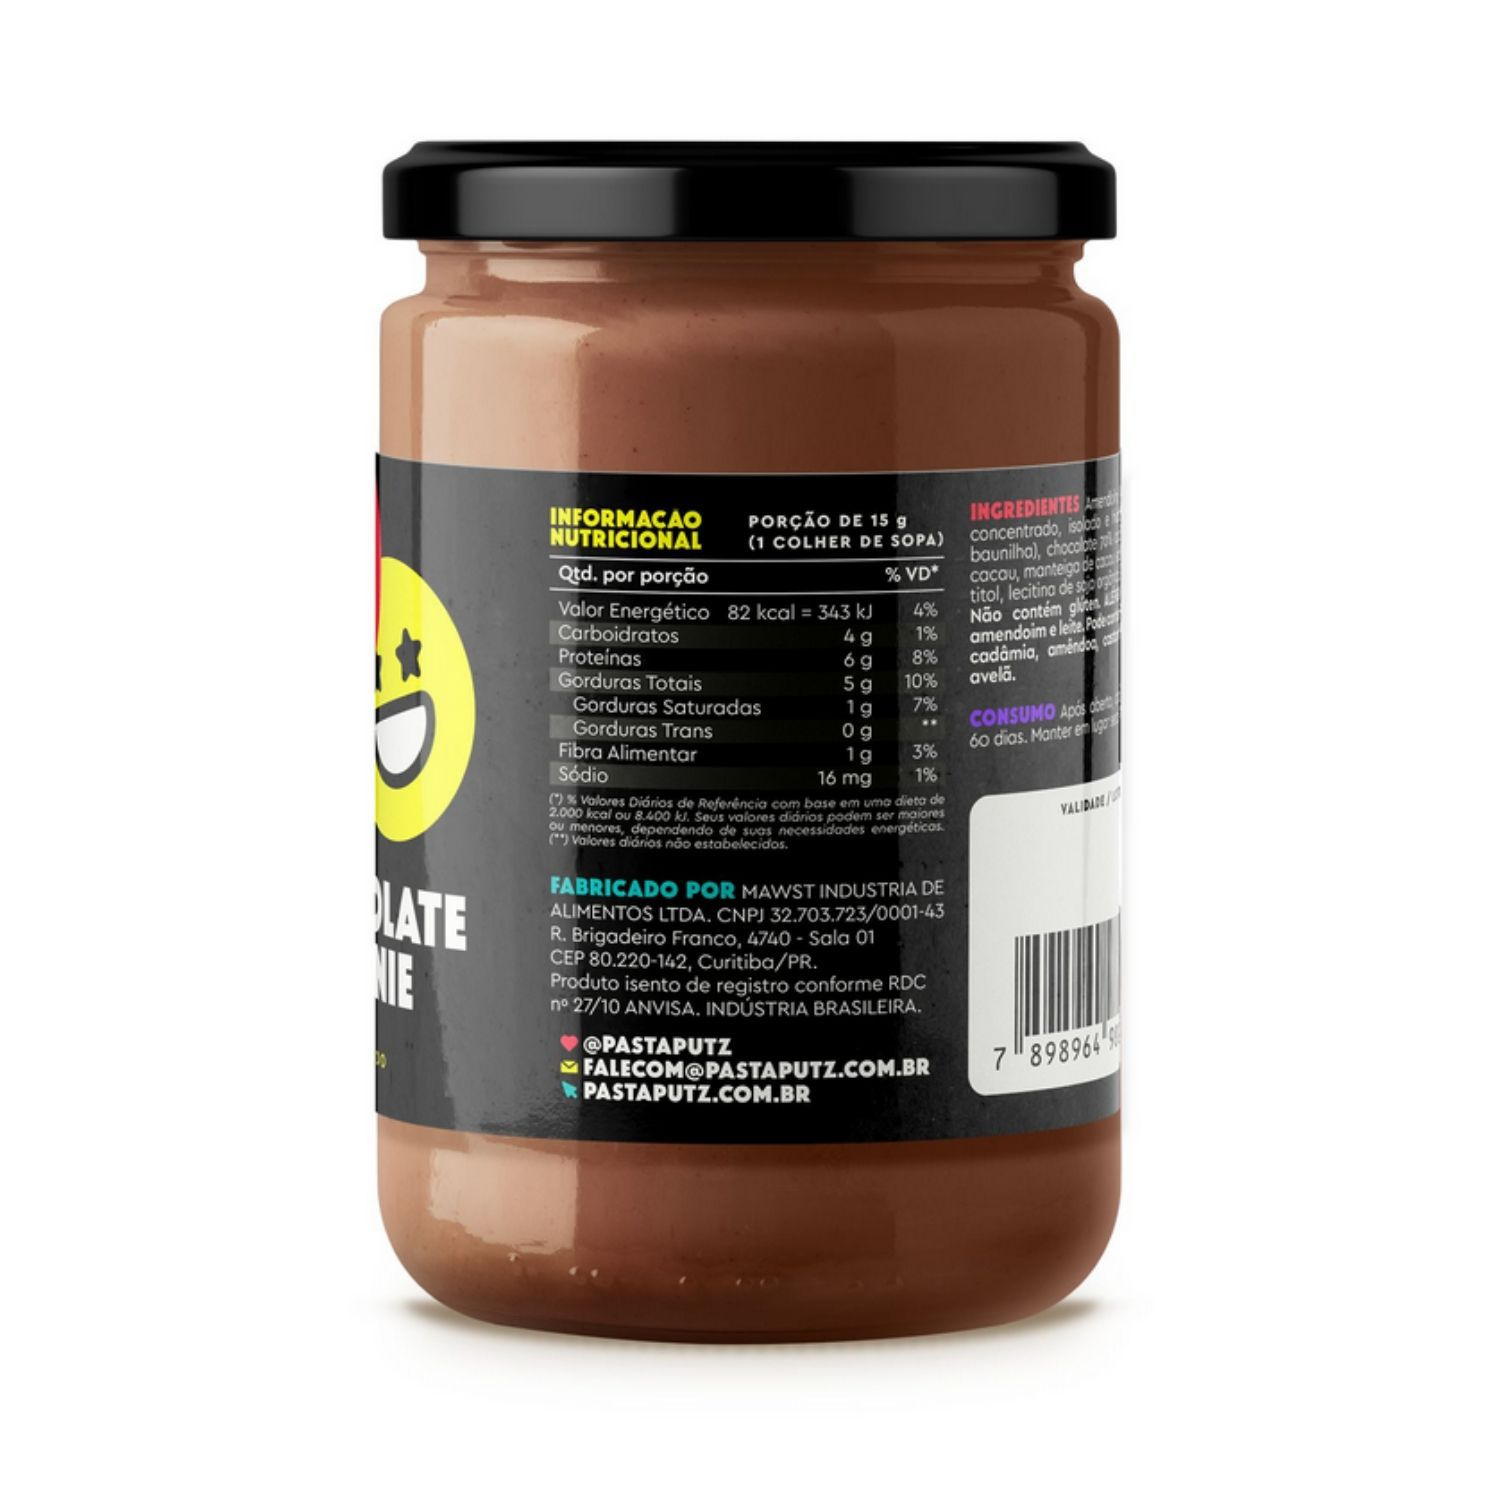 Pasta de Amendoim Putz! Chocolate Brownie com Whey Protein 600g